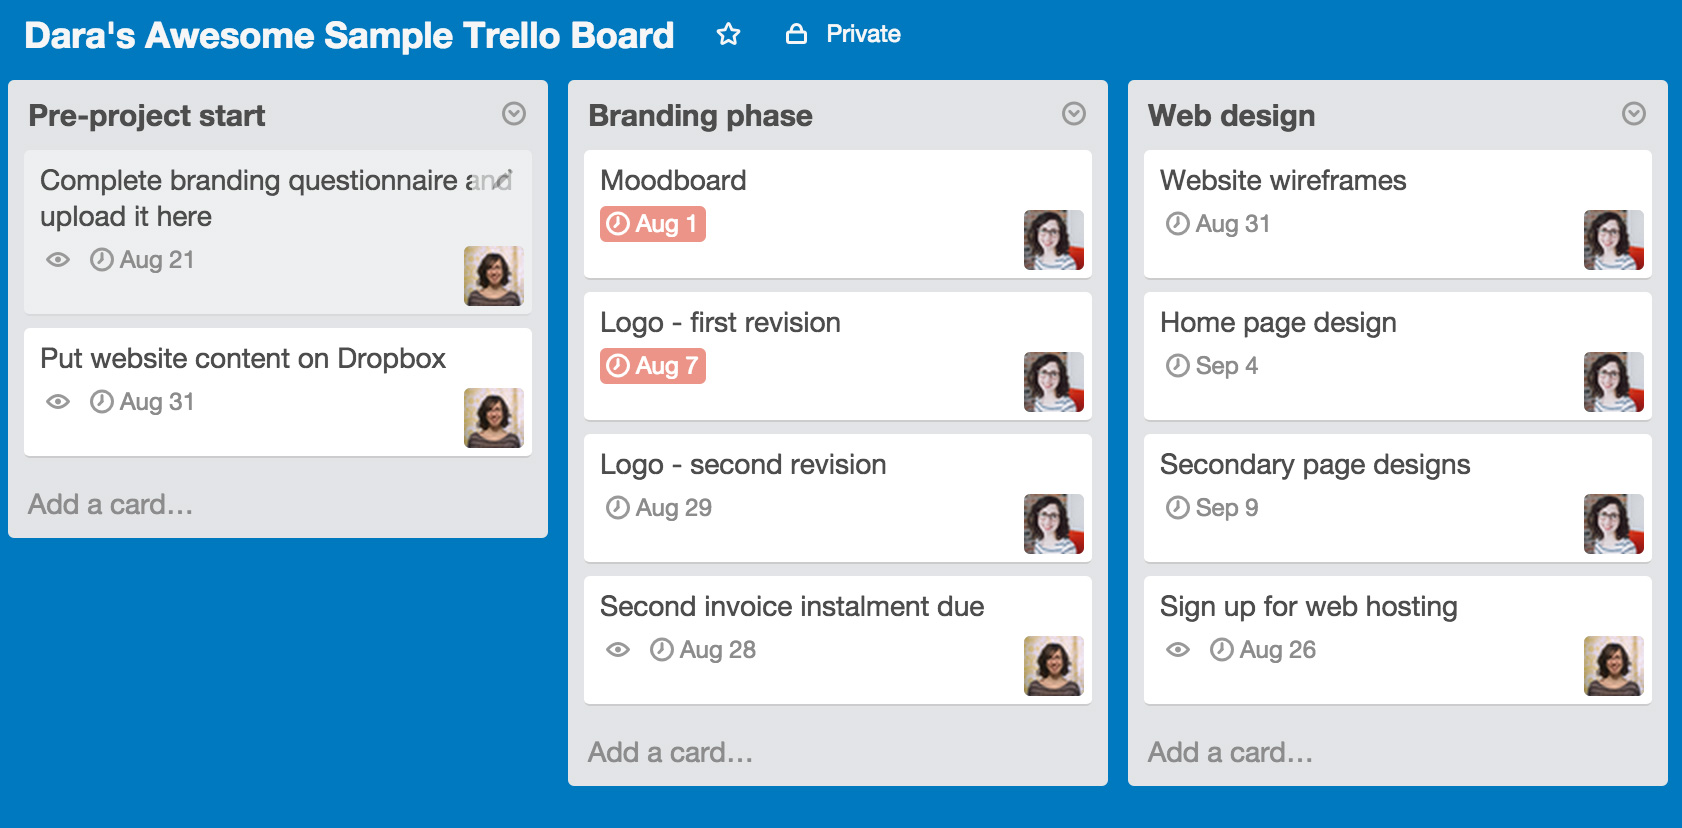 trello-sample-client-board2